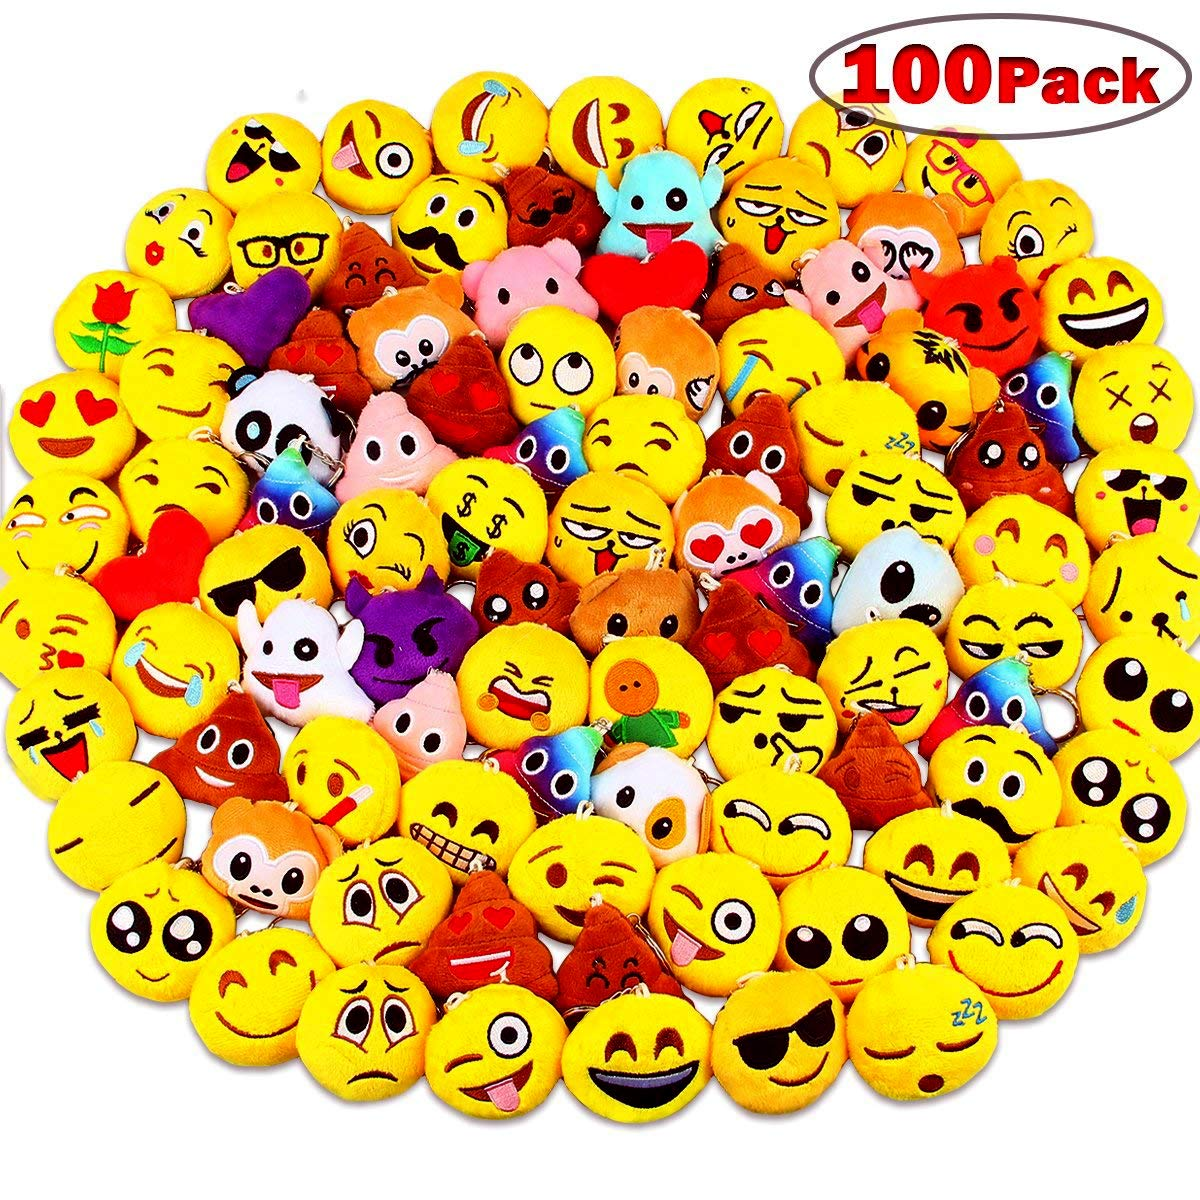 Emoji Party Supplies, Dreampark Emoji Keychain 100 Pack Mini Emoji Plush Pillows for Kids Birthday Party Favors/Easter Eggs Fillers, 2'' Set of 100